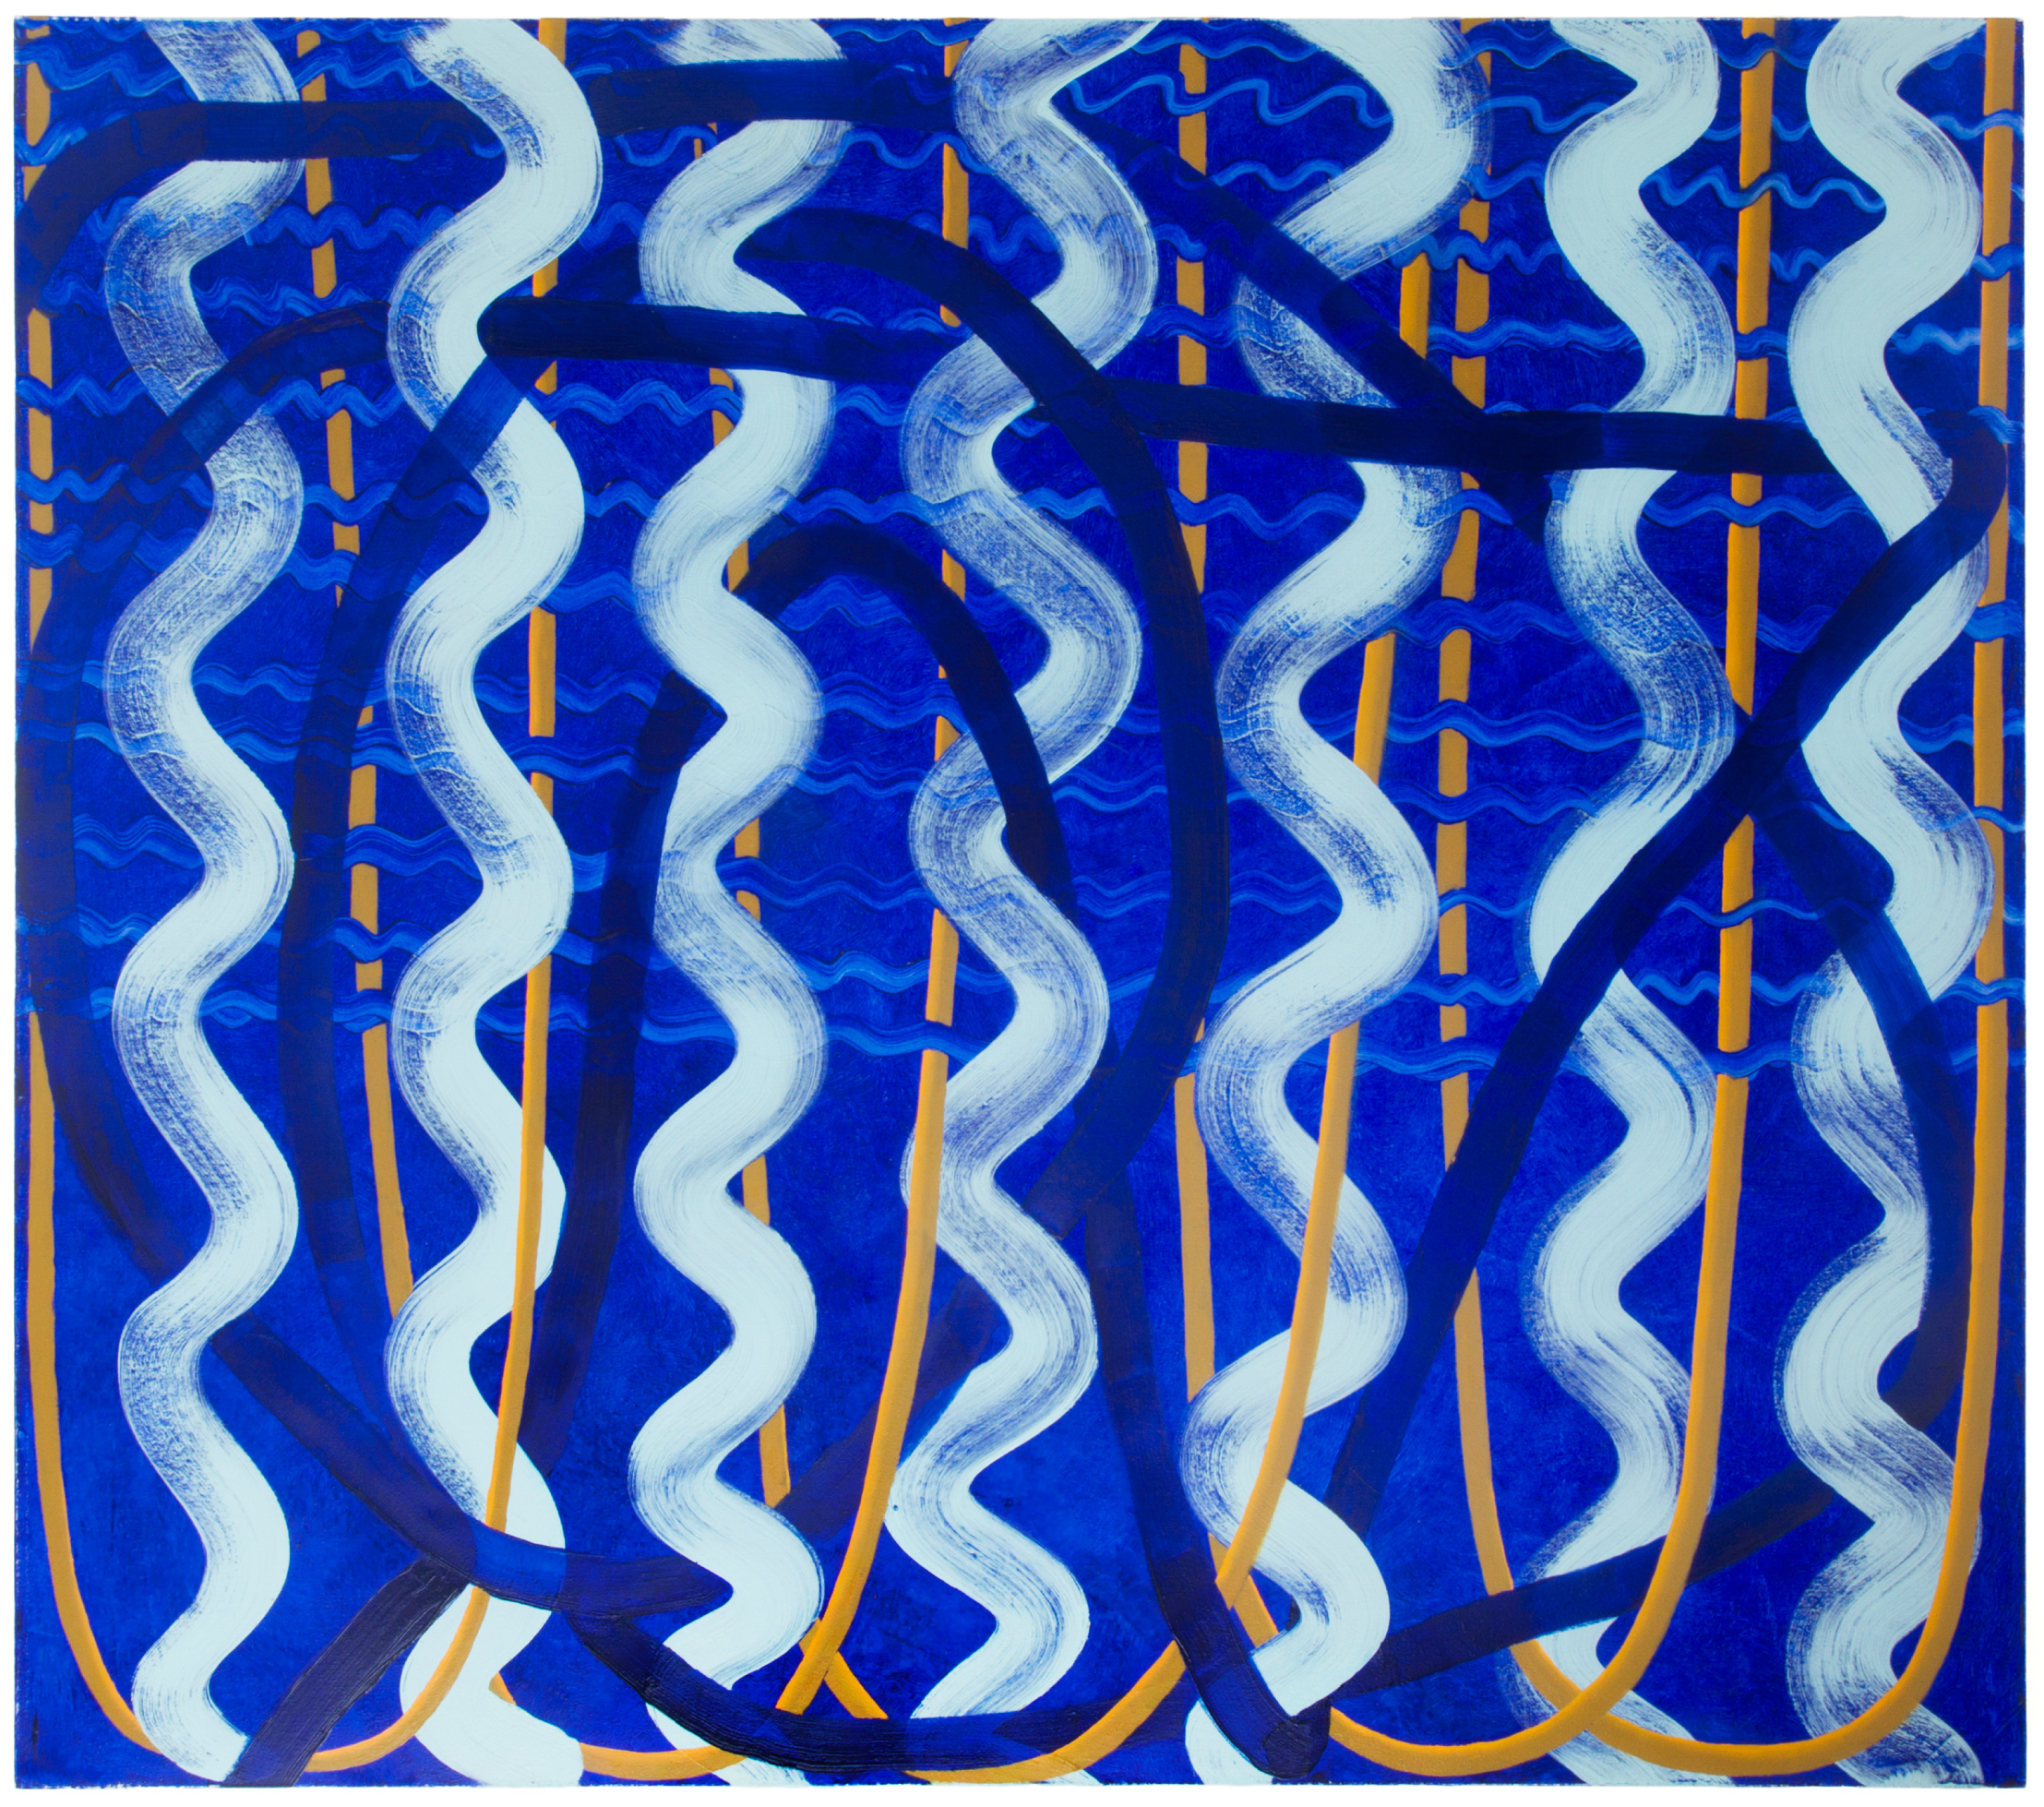 AMoCA Collection  | Untitled (waves), 2016, oil on canvas, 44x50 inches